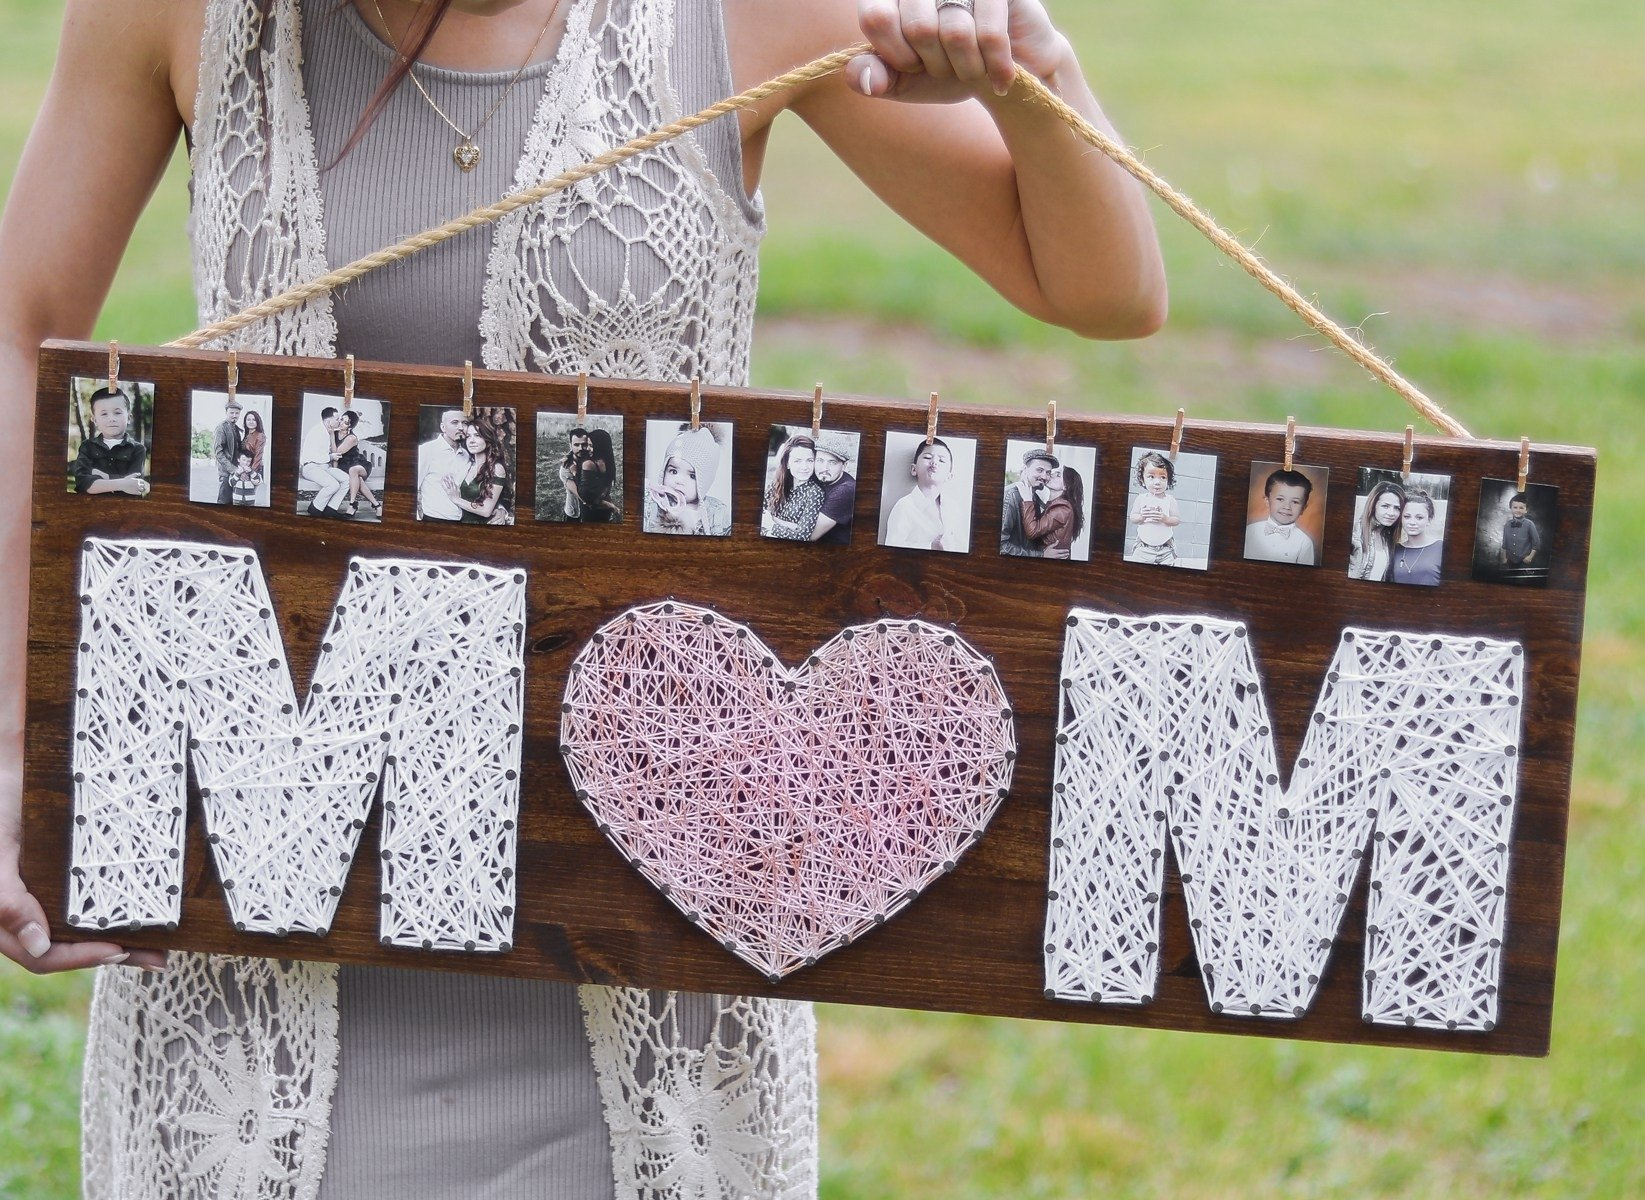 10 Cute Good Mothers Day Gifts Ideas fabulous mothers day gift ideas diy gifts and great gifts to buy 2020